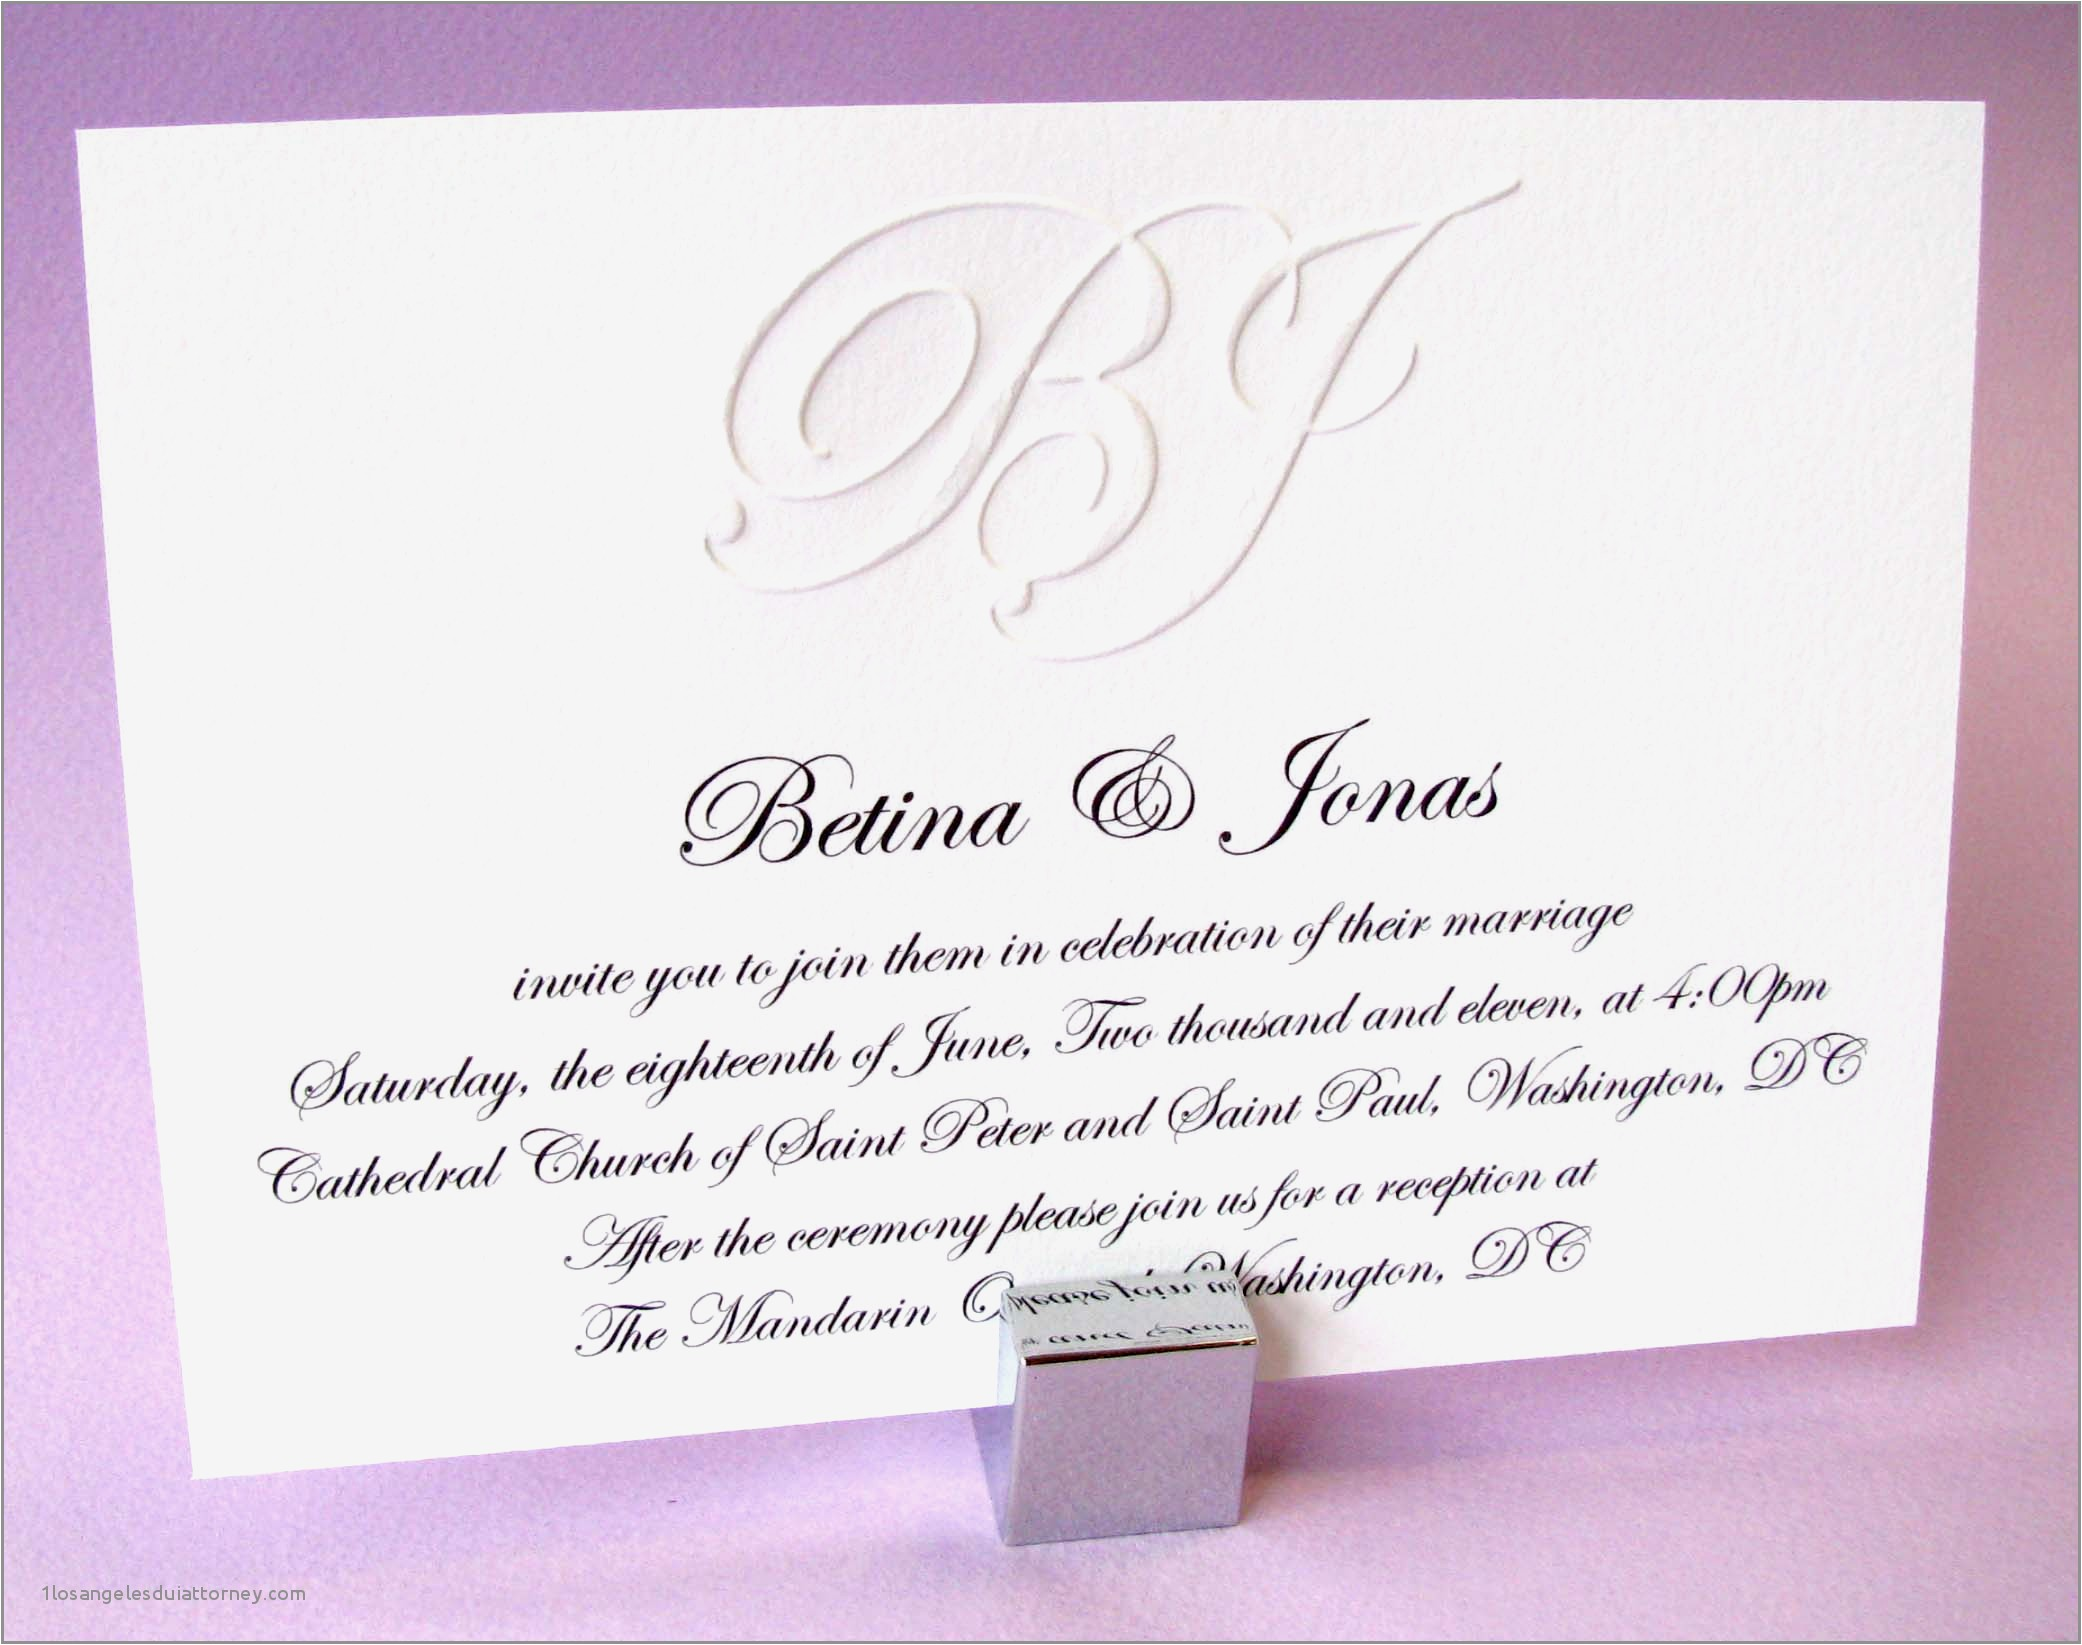 wedding invitation registry wording samples awesome ideas romantic weddingtions wording examples fresh classic romance